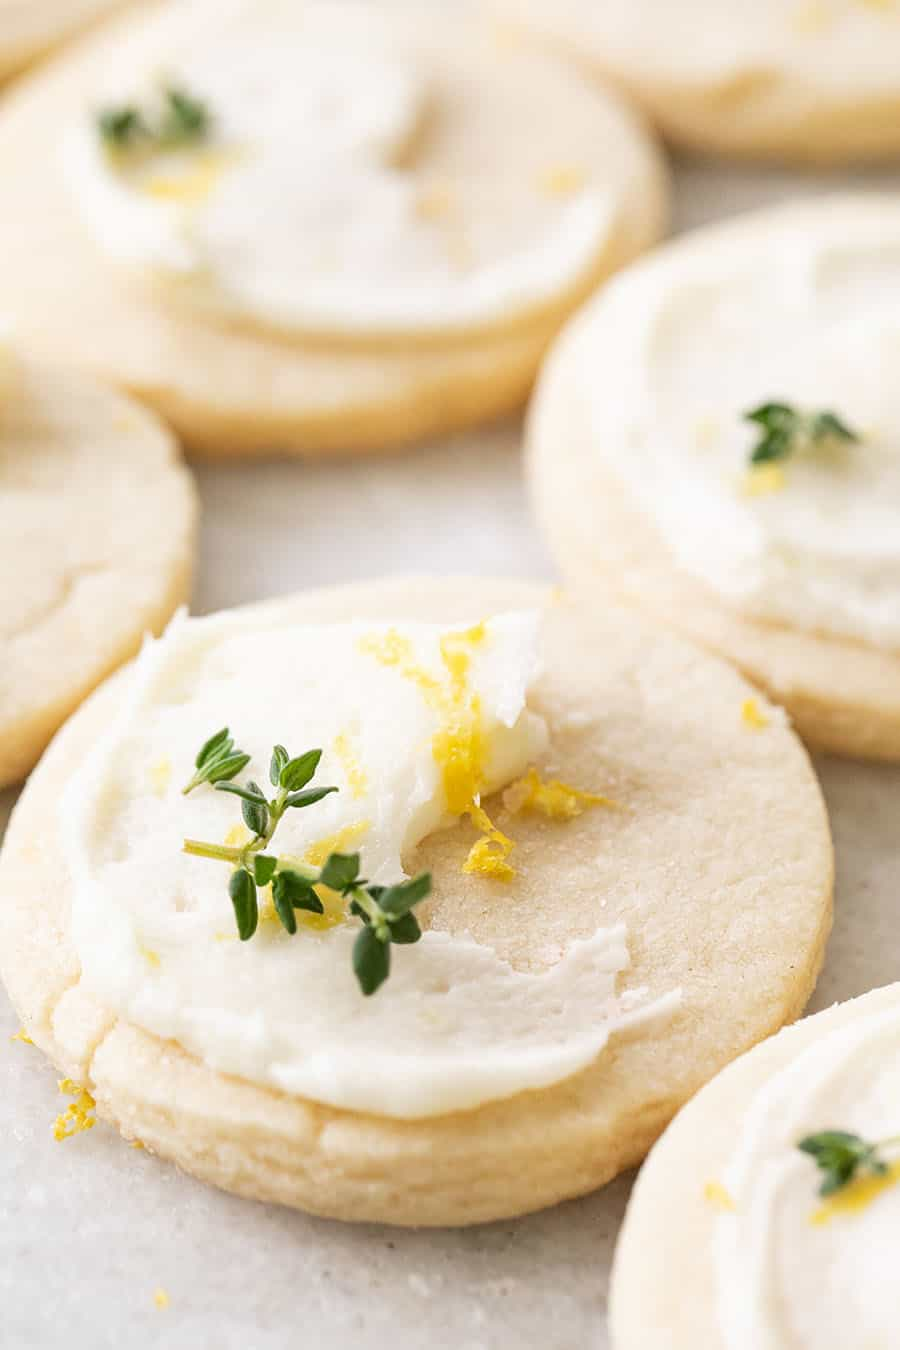 close up of Lemon & Thyme Shortbread Cookies with lemon frosting.